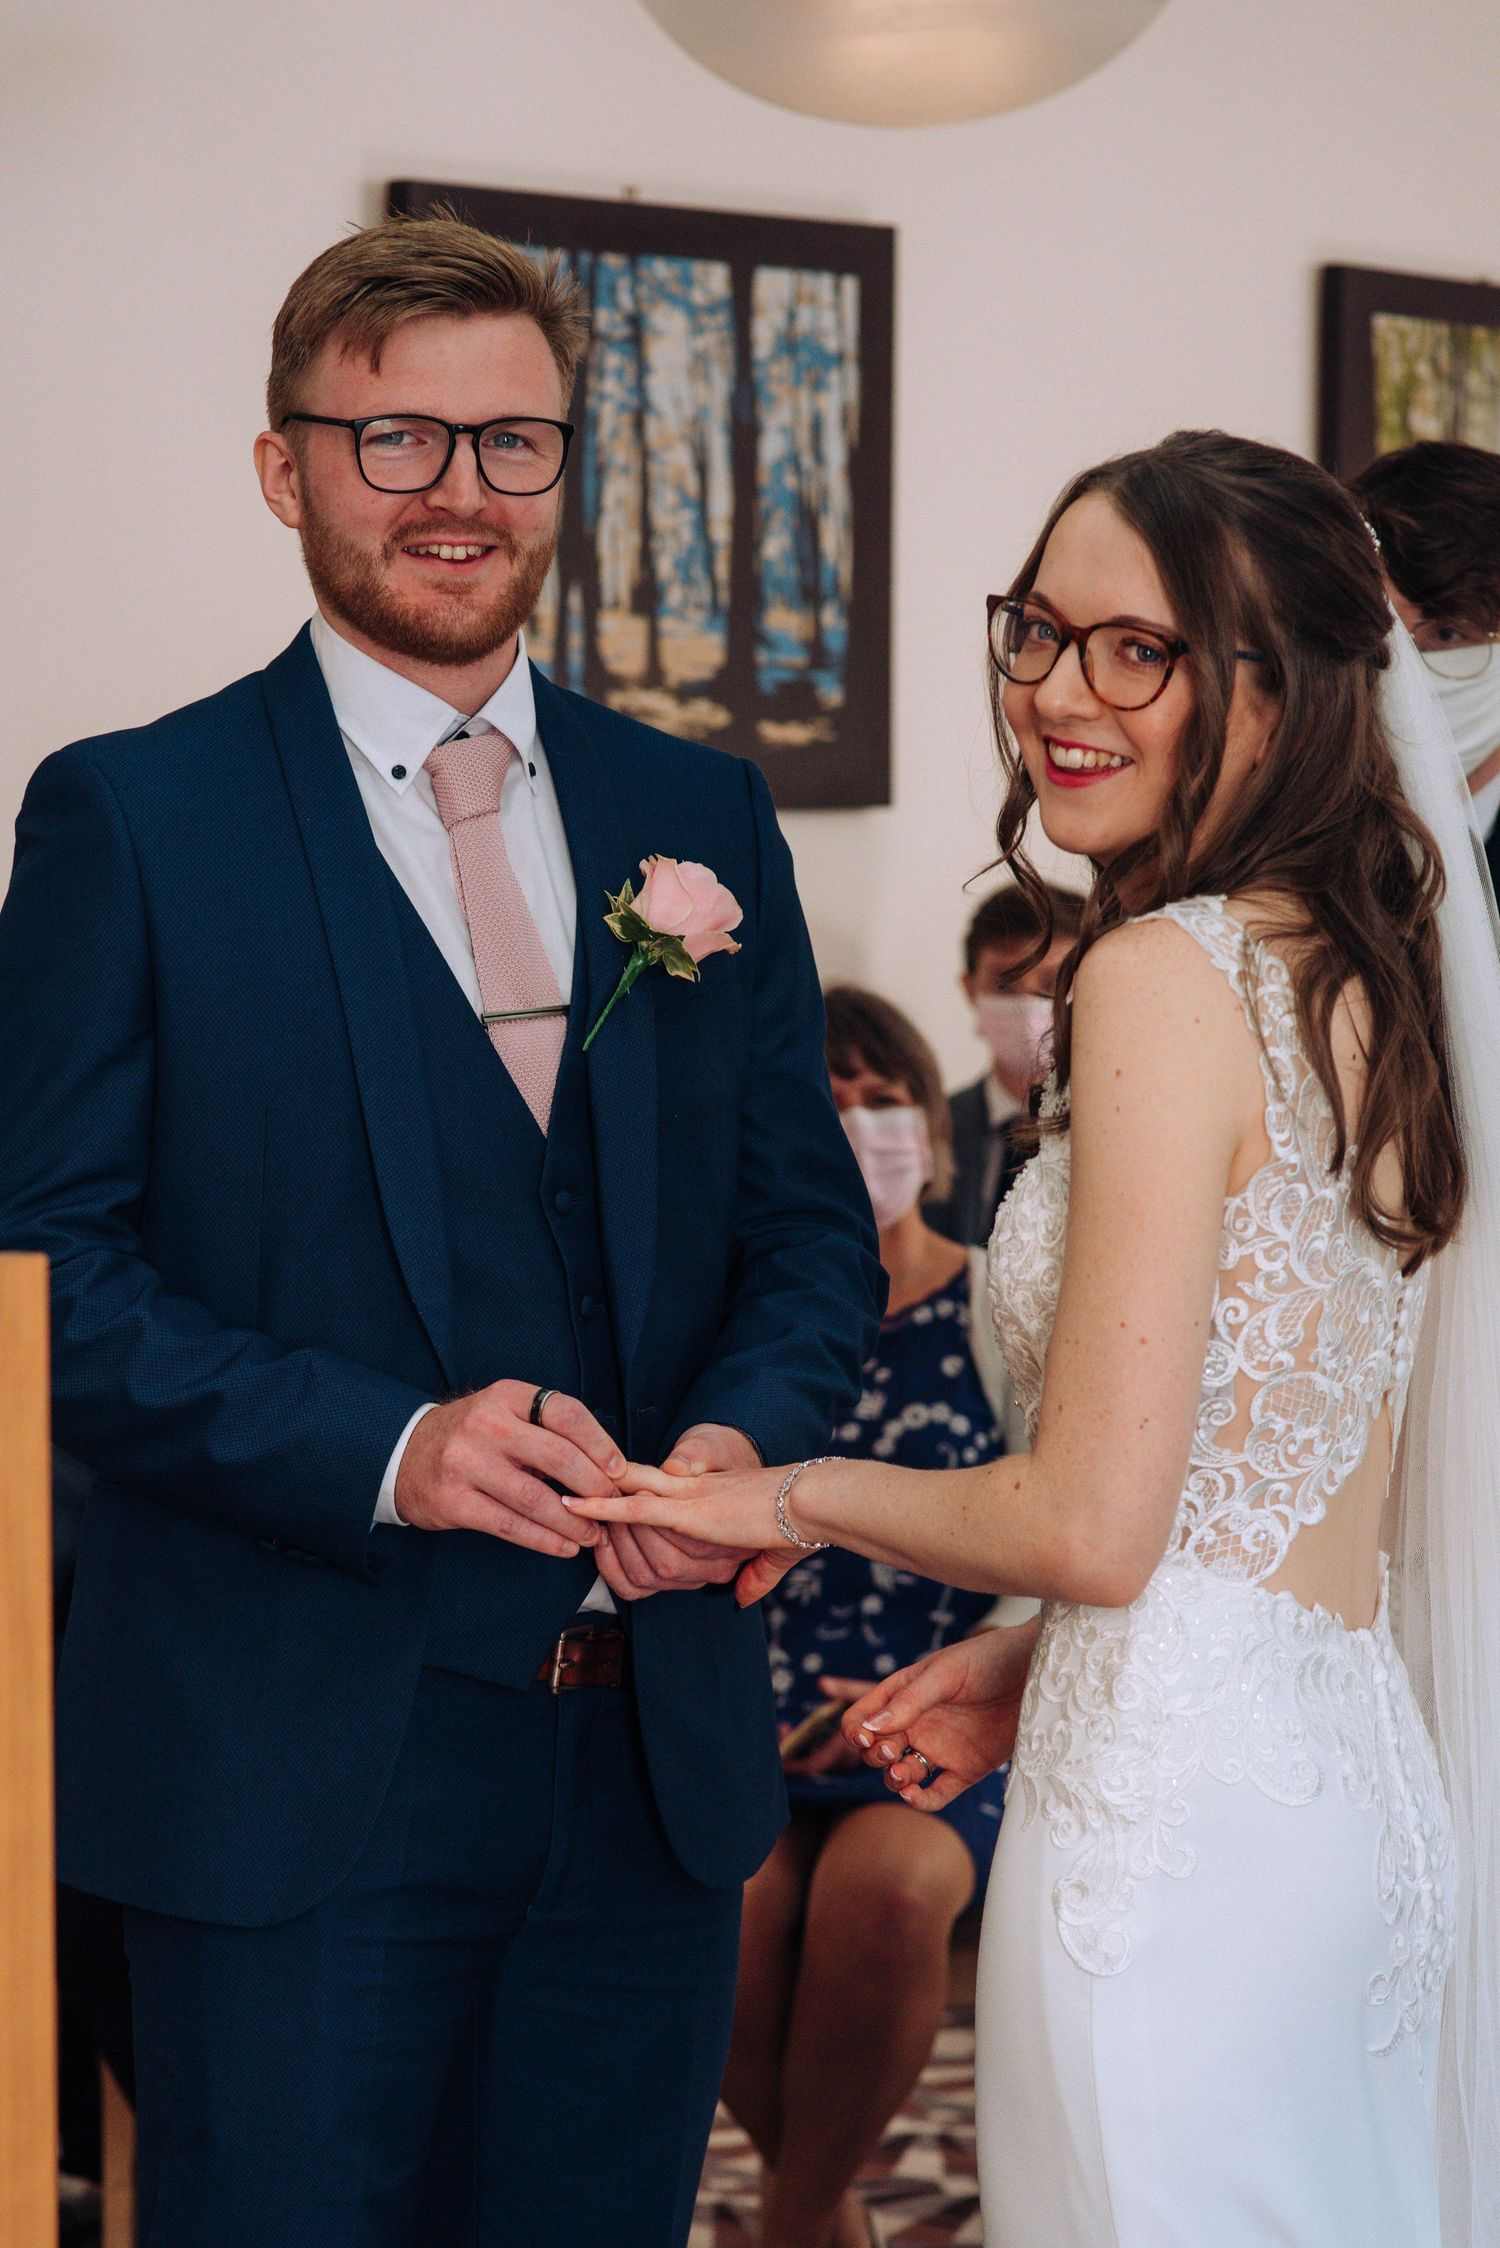 Swindon Registry office wedding by Zara Davis Photography, Gloucestershire exchanging rings